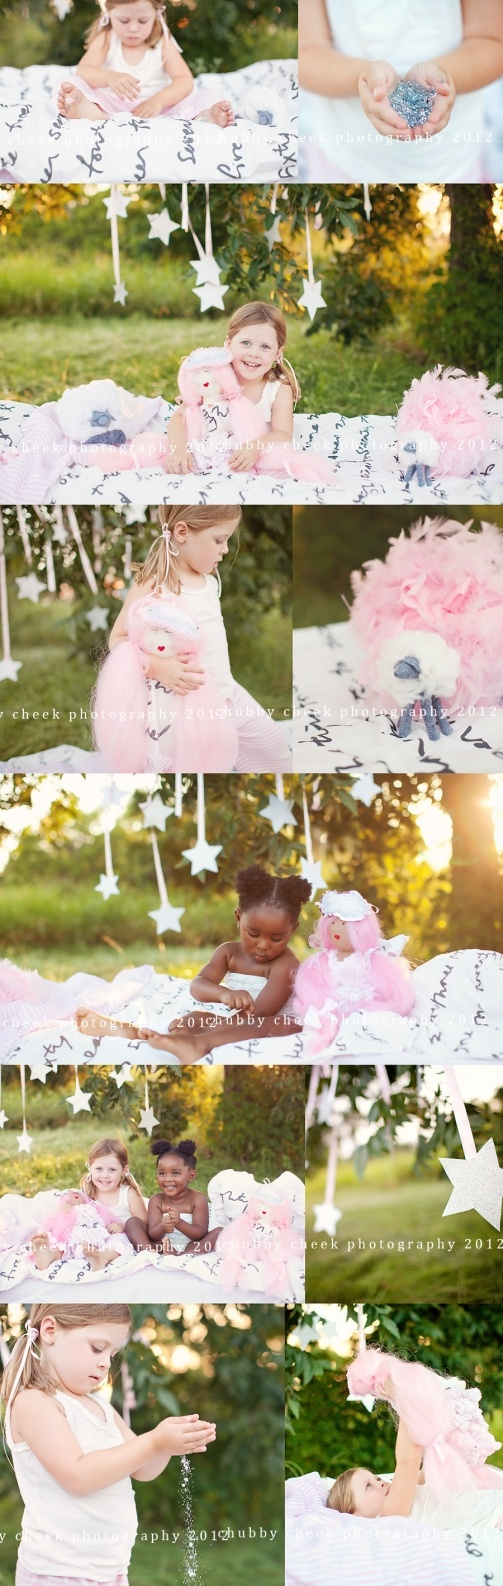 Simple and nice set.....grab a blanket, hang some stars and let the girls play!